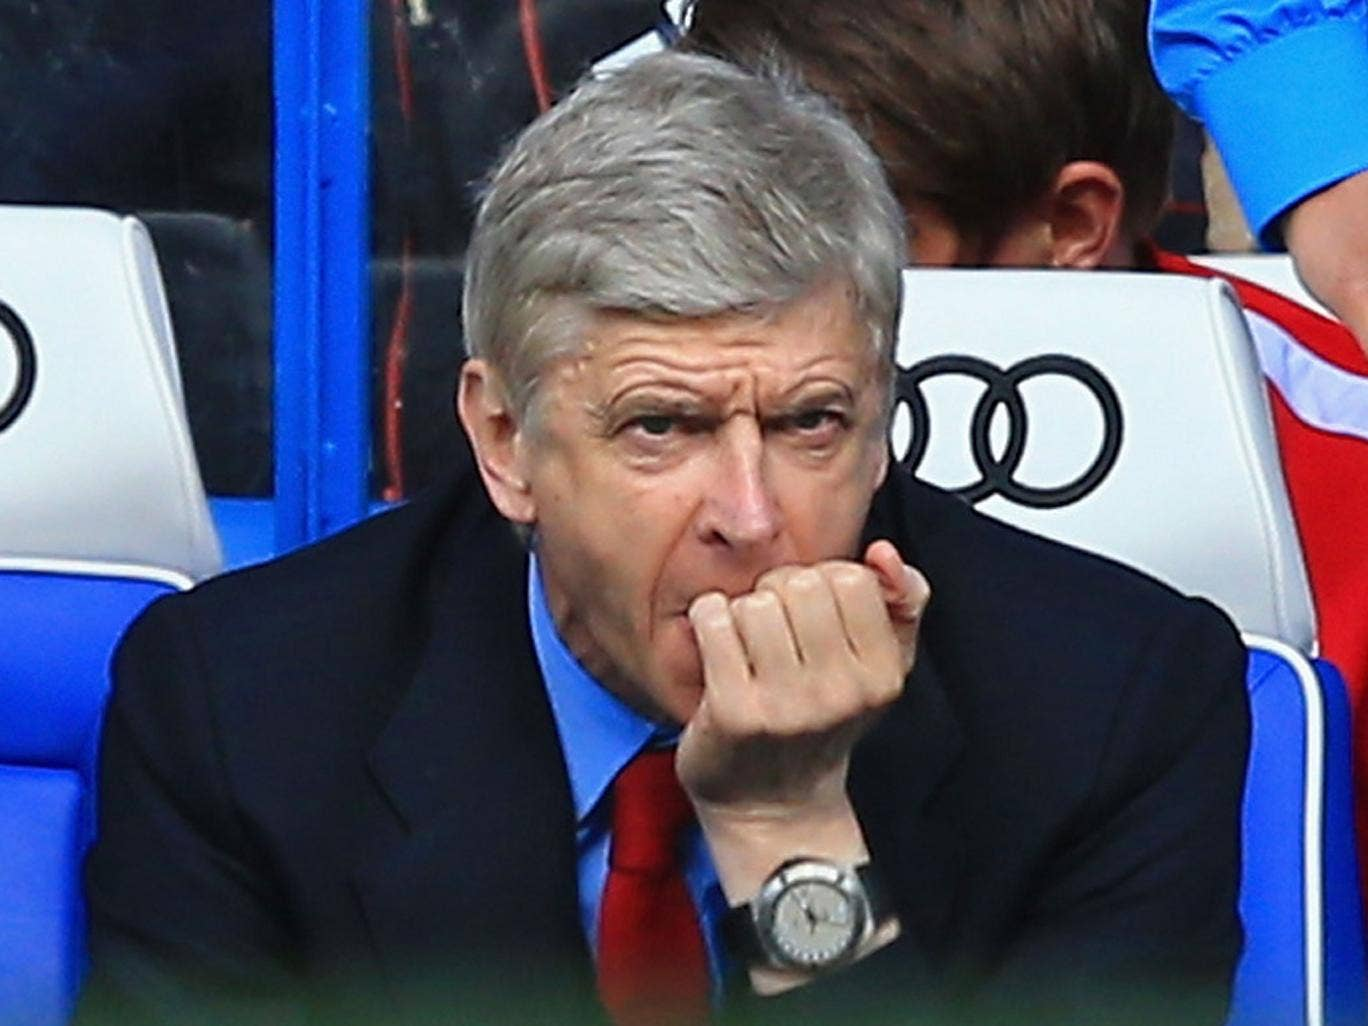 Arsène Wenger declined to face the press after his 1,000th game as Arsenal manager ended in defeat